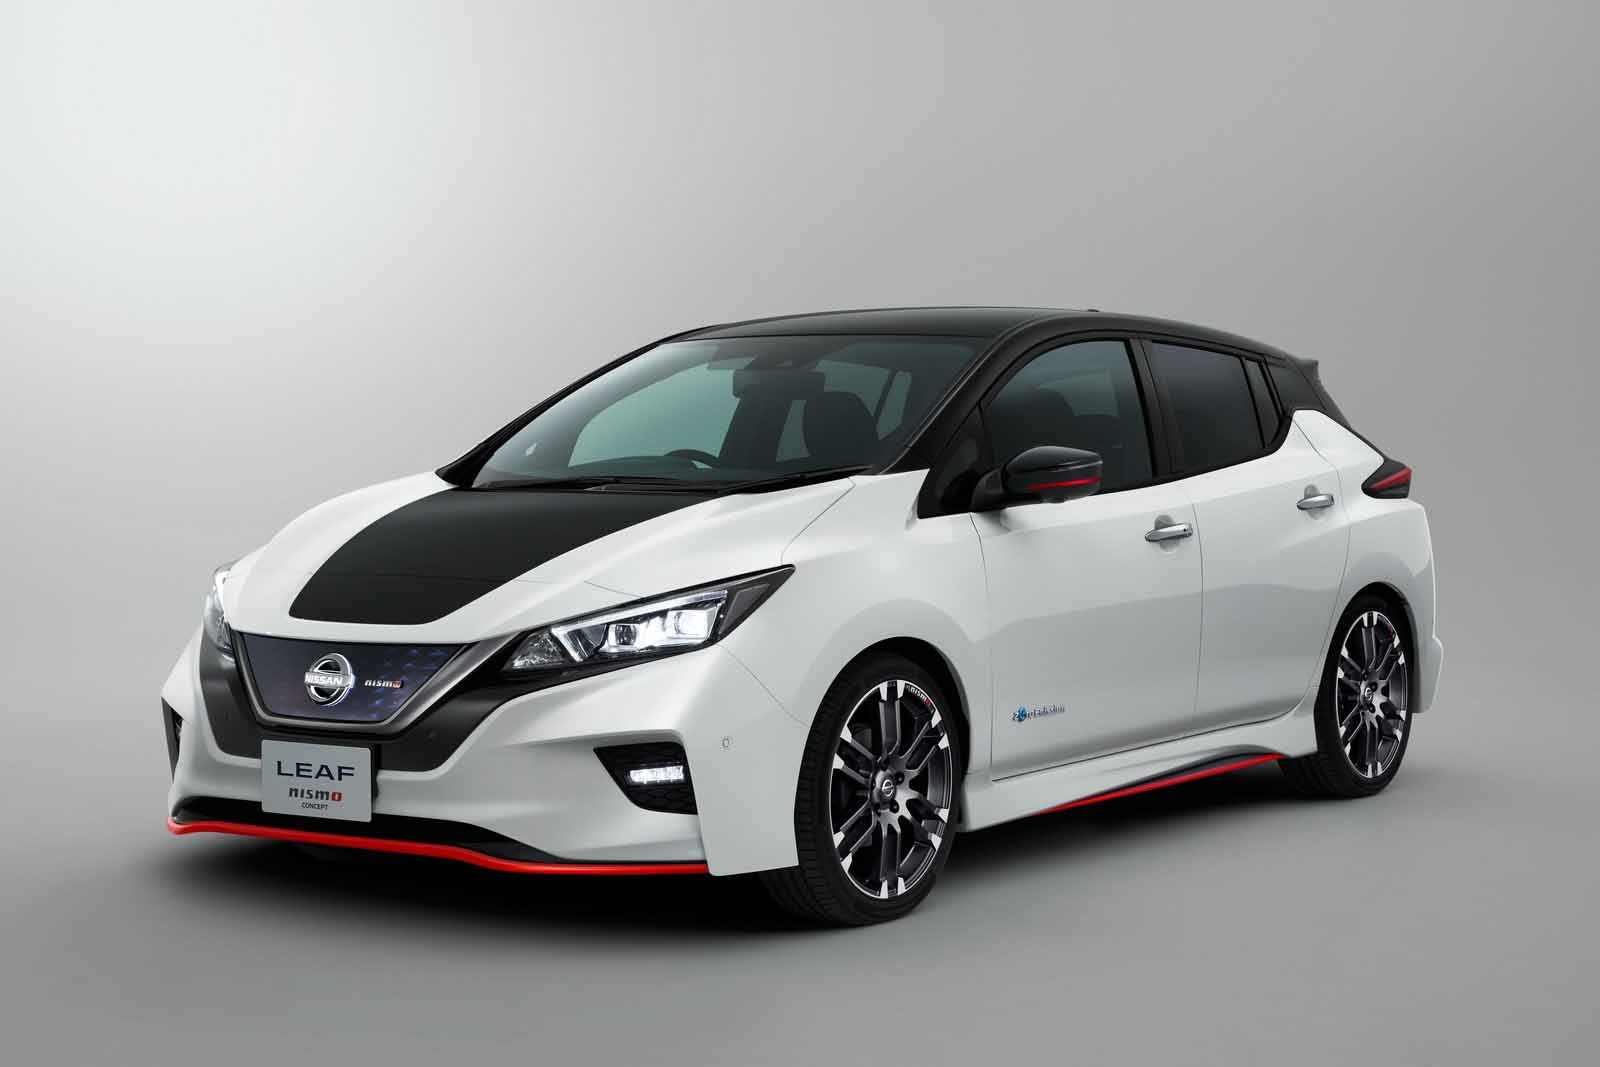 nissan leaf nismo concept brings all the fun none of the emissions news. Black Bedroom Furniture Sets. Home Design Ideas